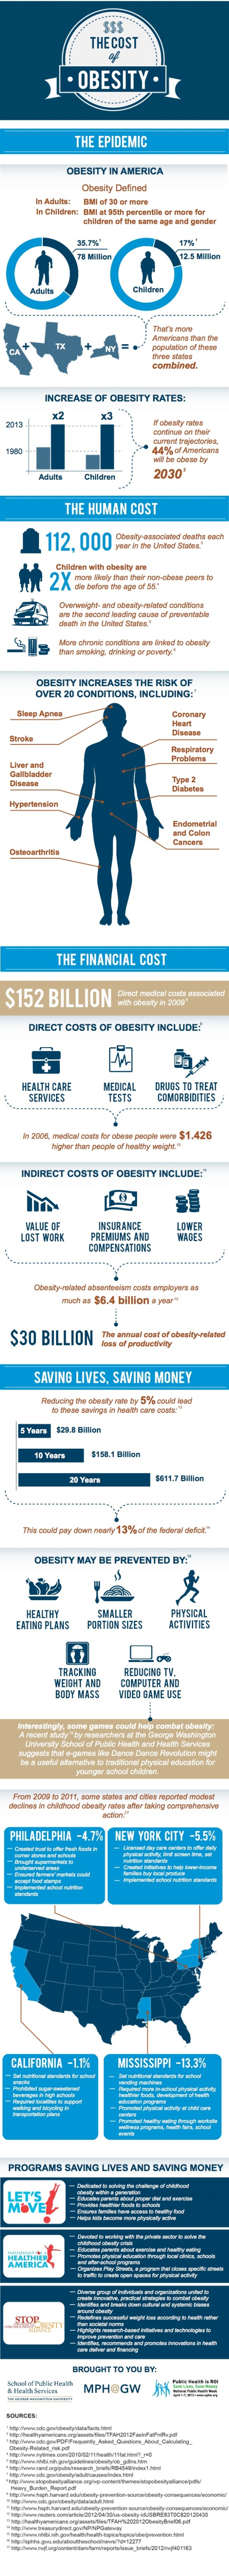 Costs Of Obesity In America